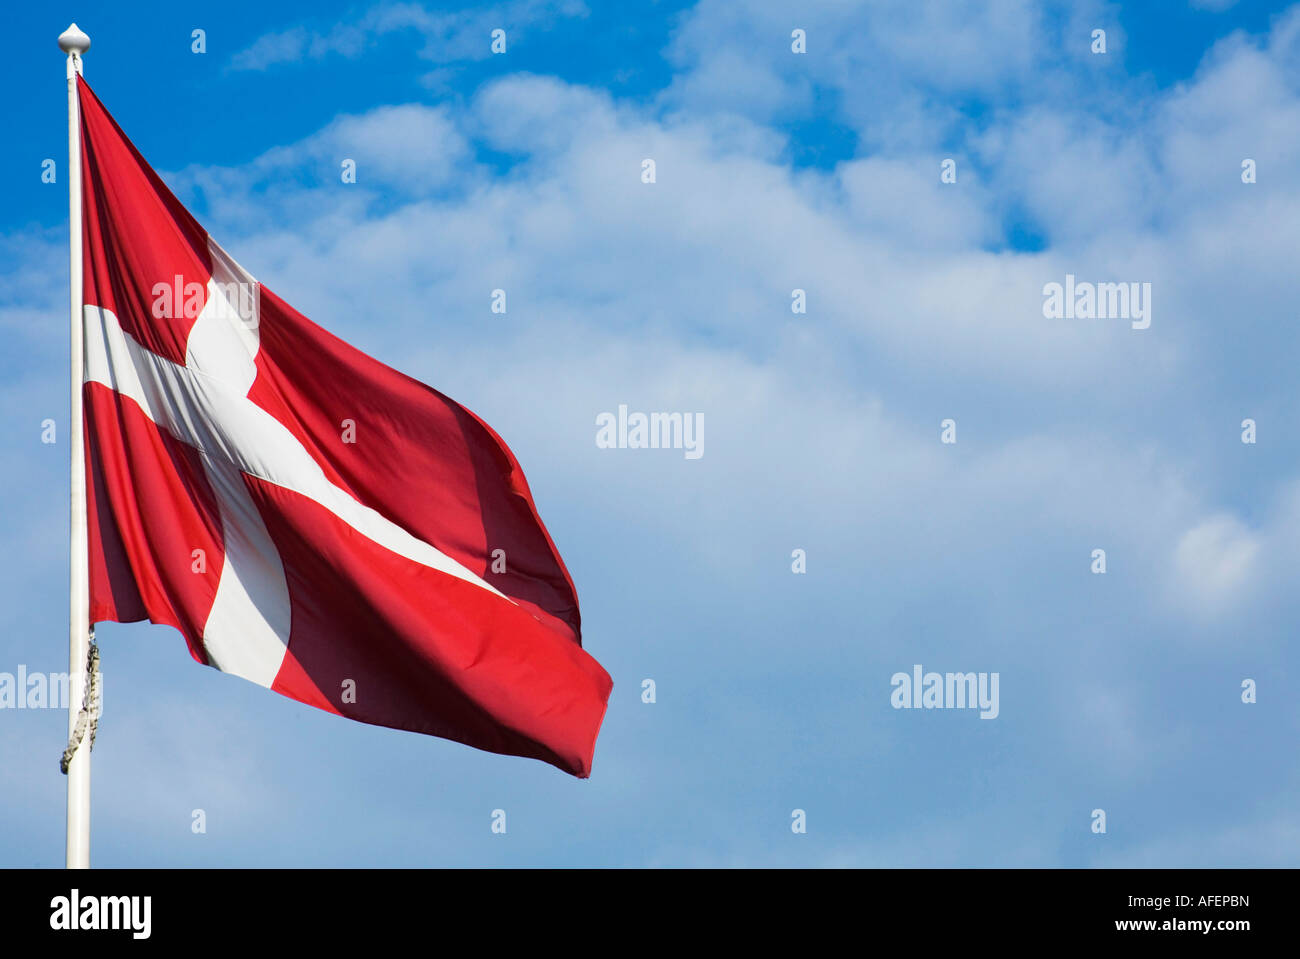 Danish Flag against a blue sky with clouds - Stock Image